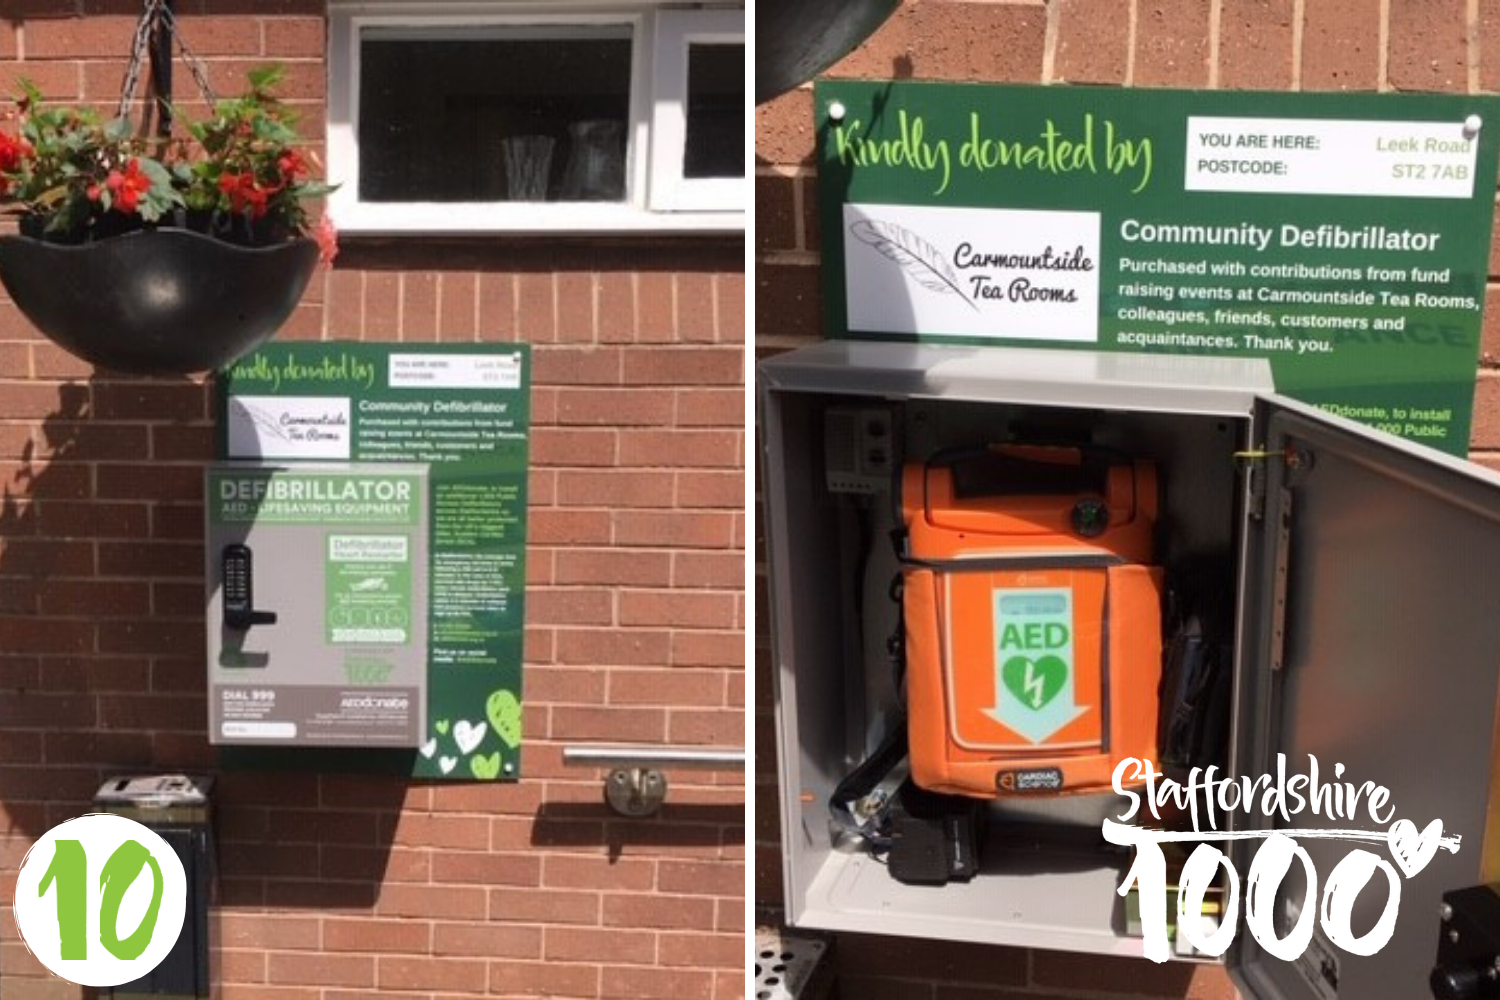 Carmountside Tea Rooms install Defibrillator